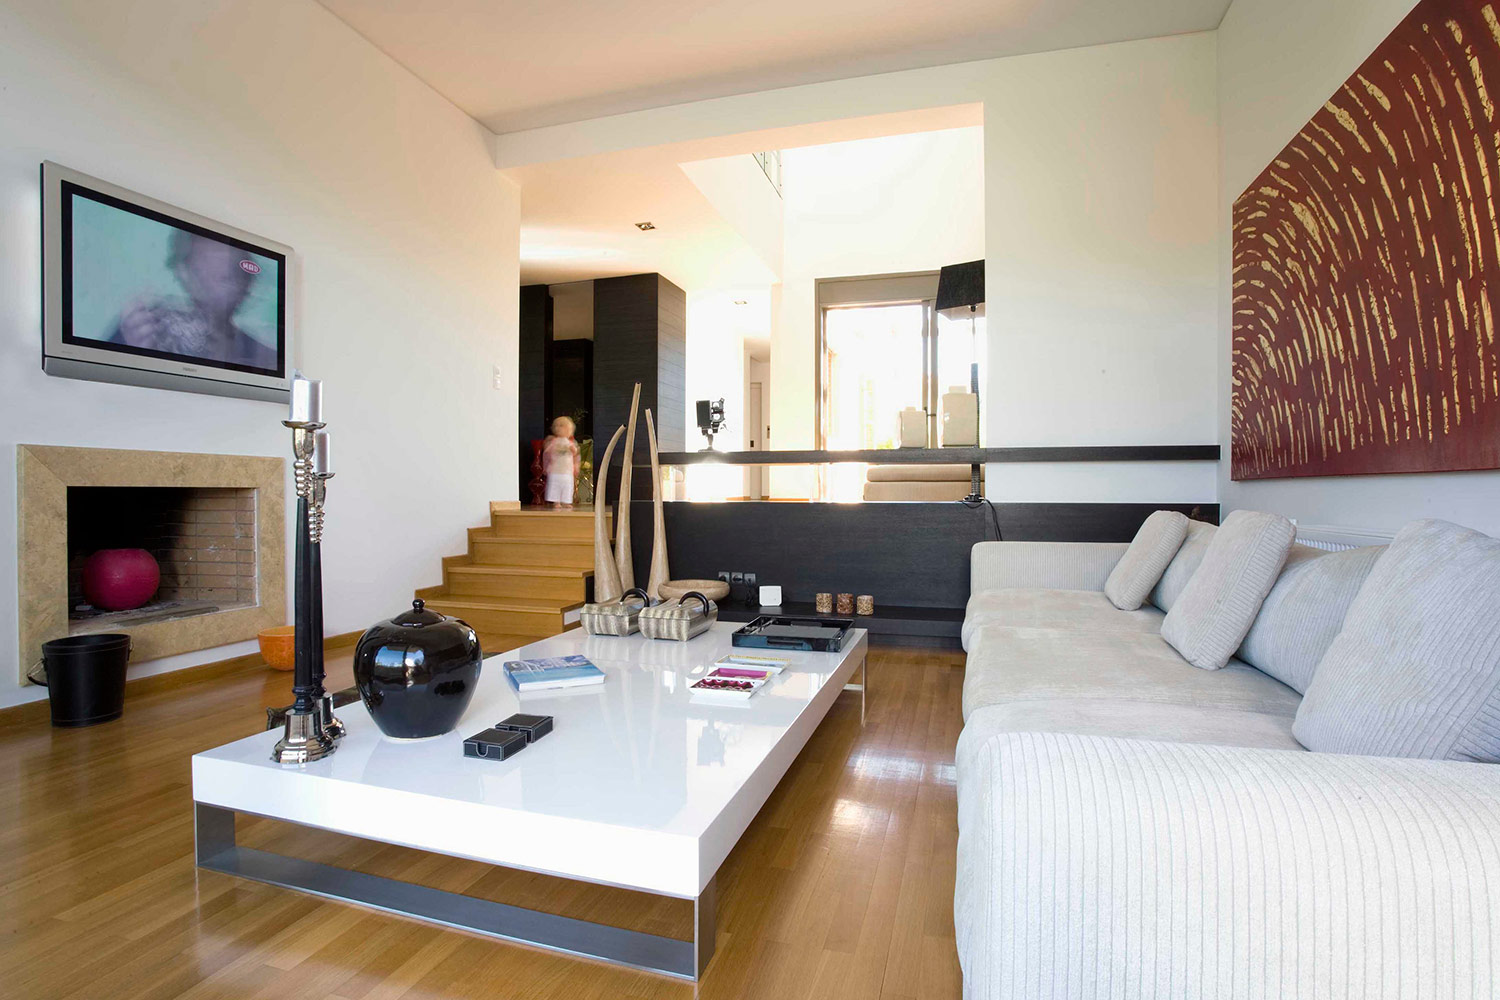 Residence in Kifissia